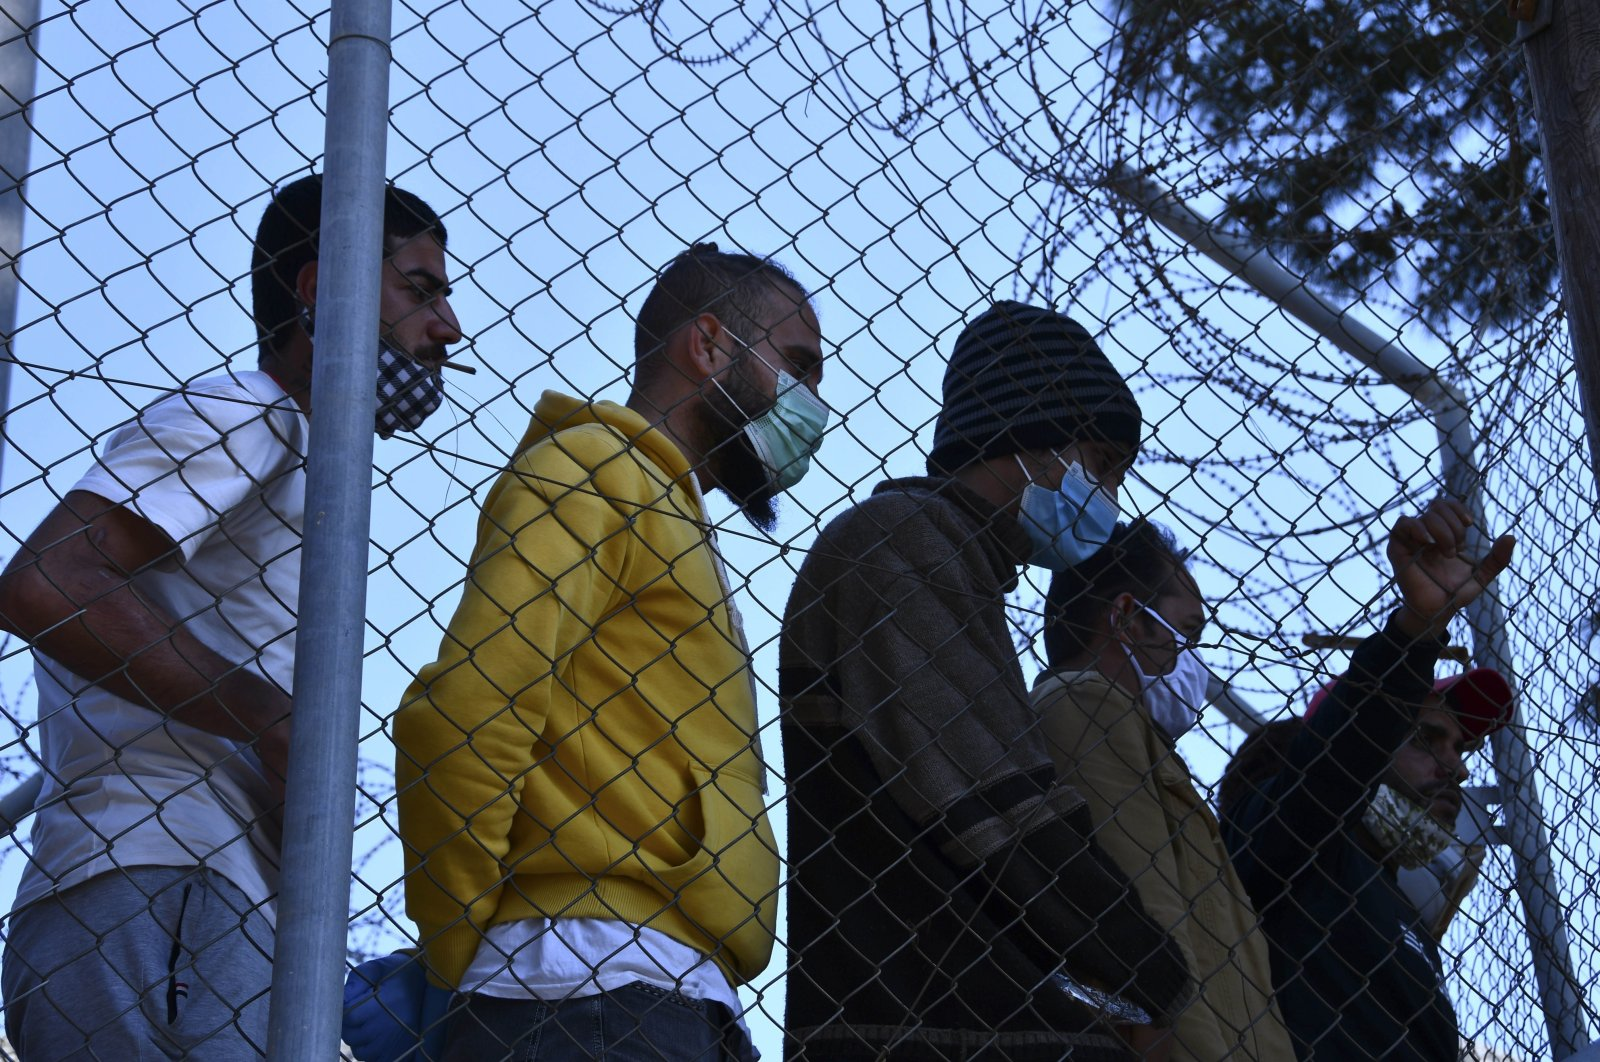 Migrants inside a refugee camp watch European Union Commissioner Ylva Johansson's visit to the port of Vathy on the eastern Aegean island of Samos, Greece, March 29, 2021. (AP Photo)